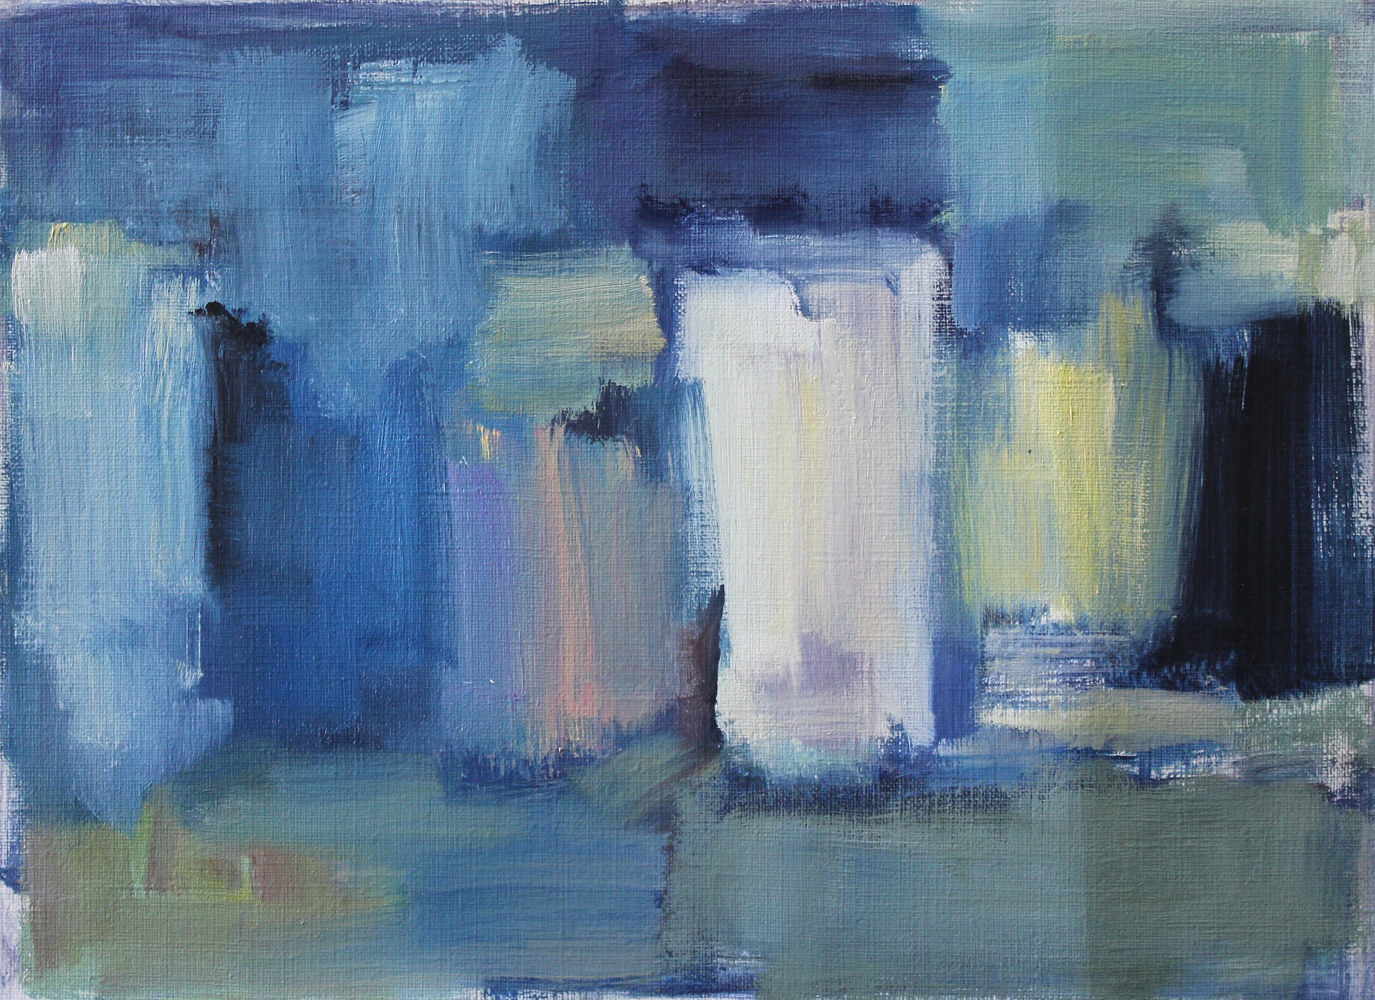 "Oil painting Abstract With Blue Light, oil on paper, 8"" x 10 3/4"" by Susan Horn"